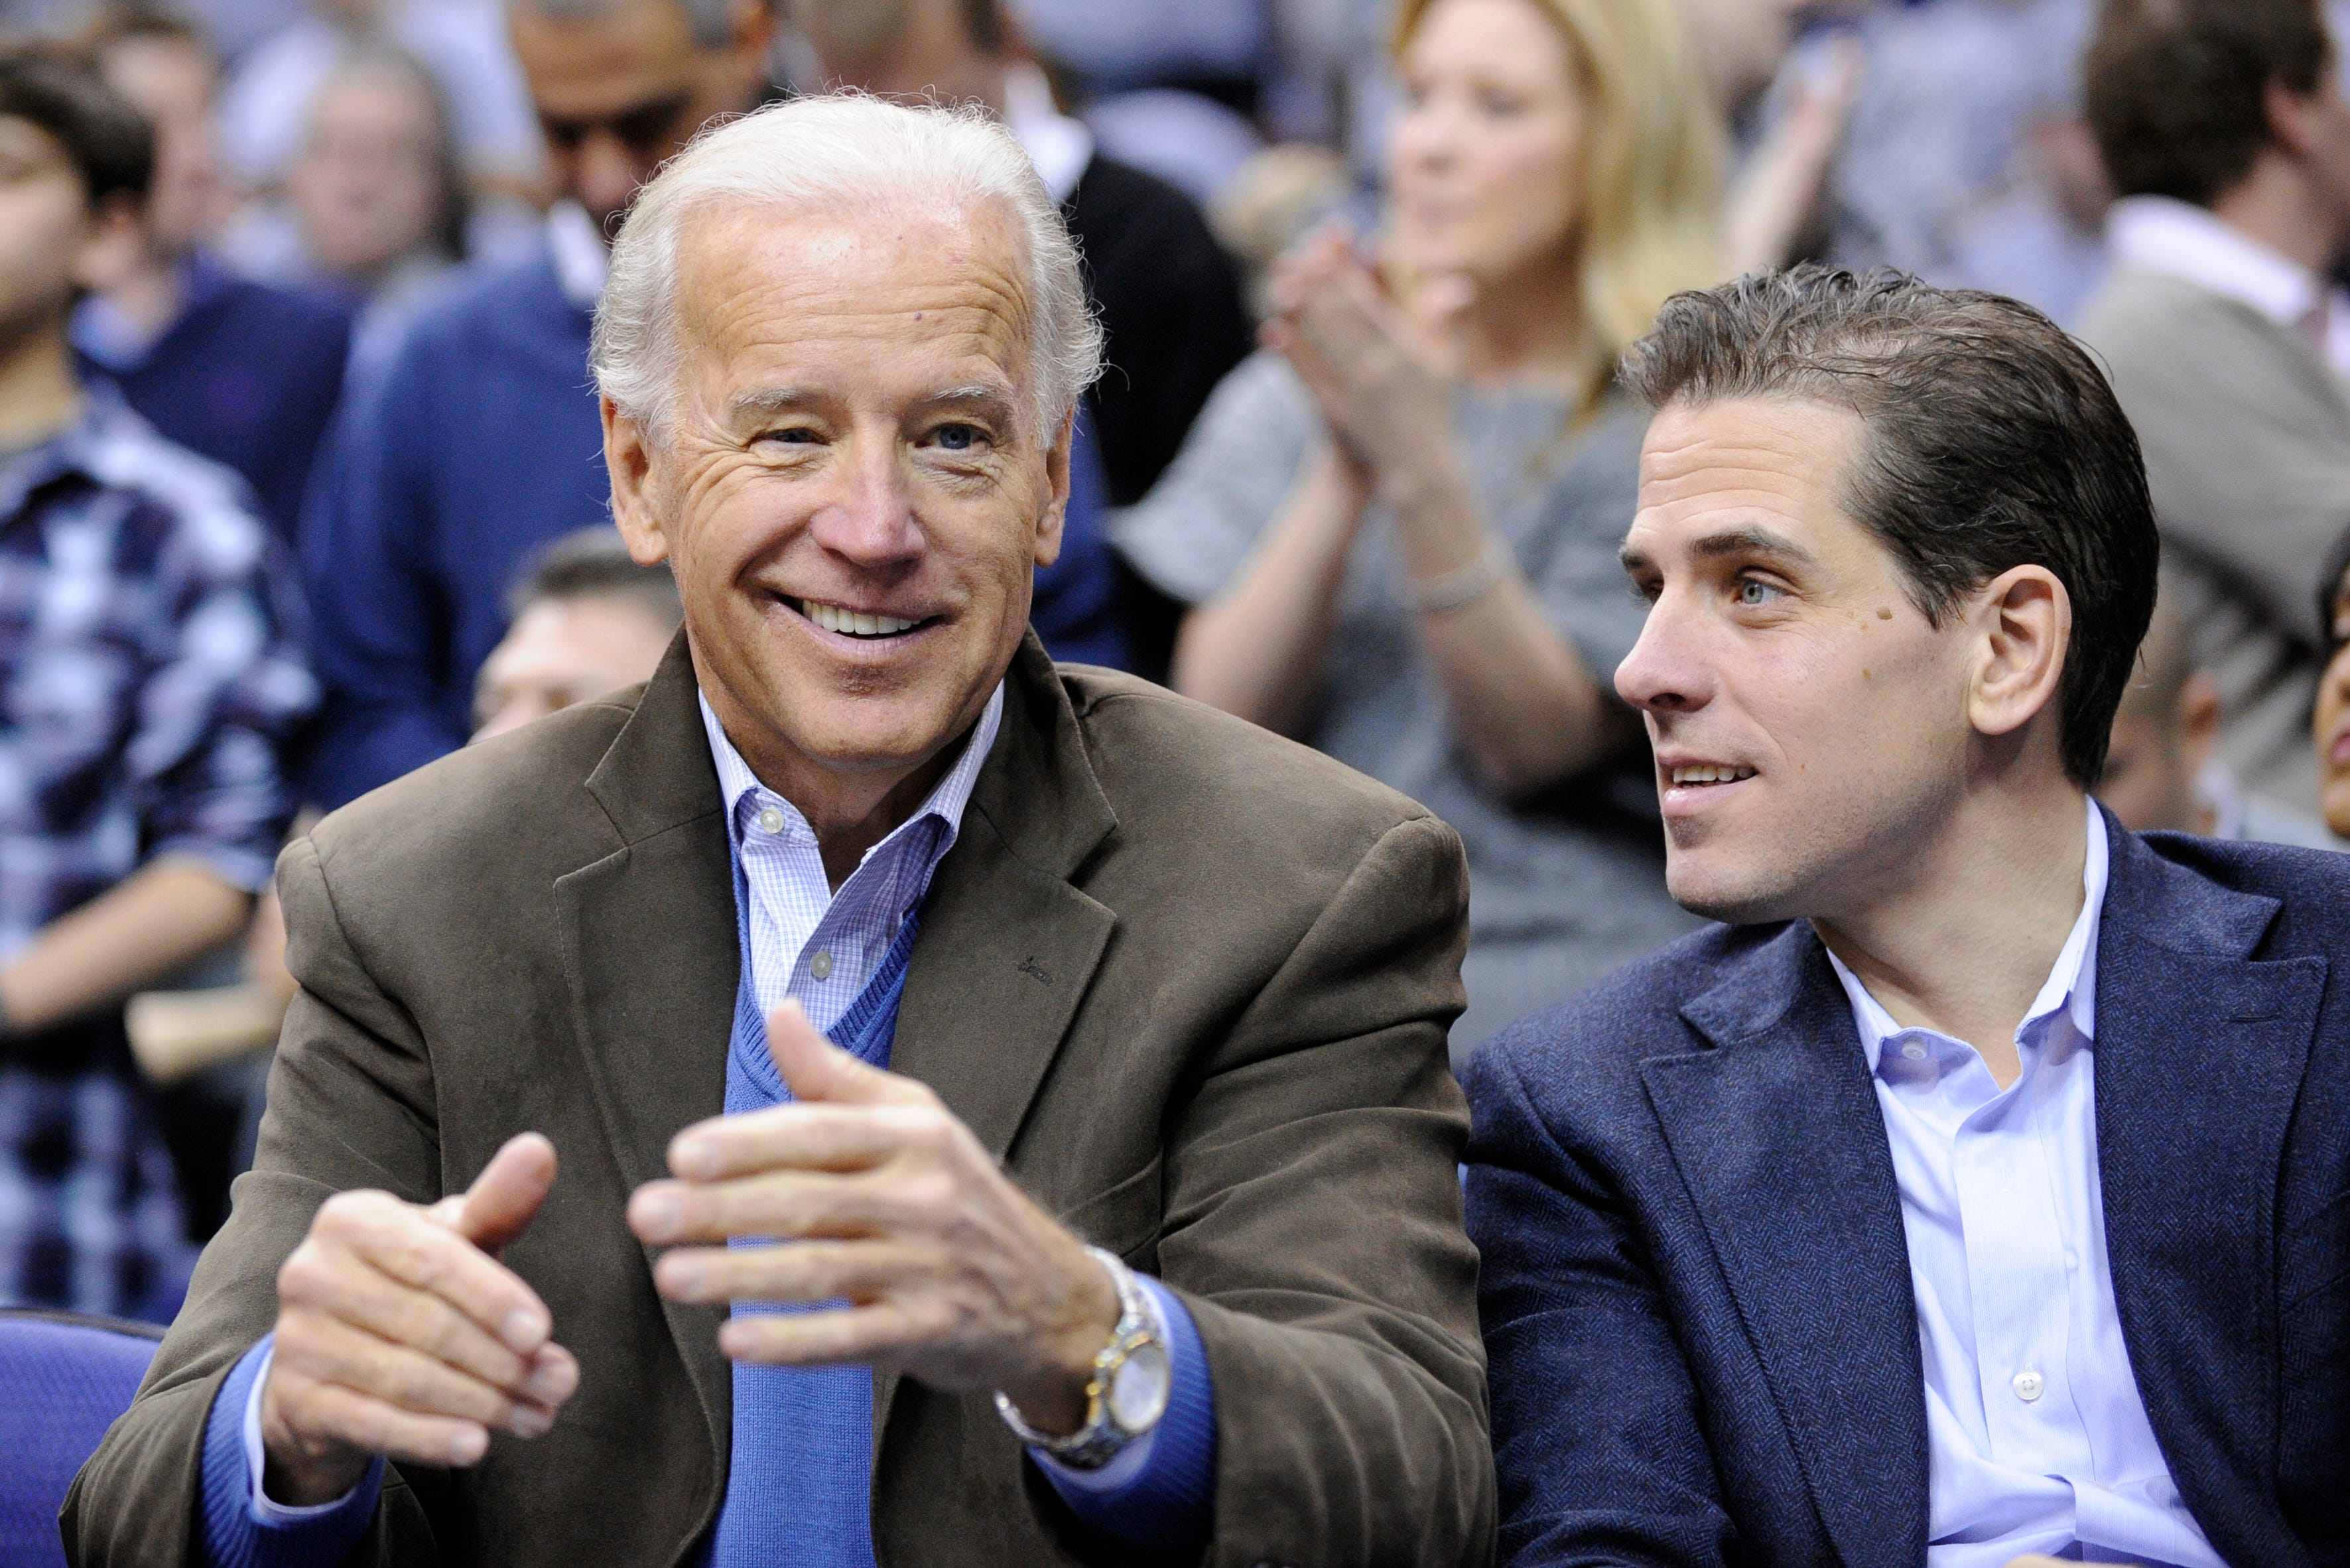 Joe Biden Defends Son Says He Will Be On 2020 Campaign Trail